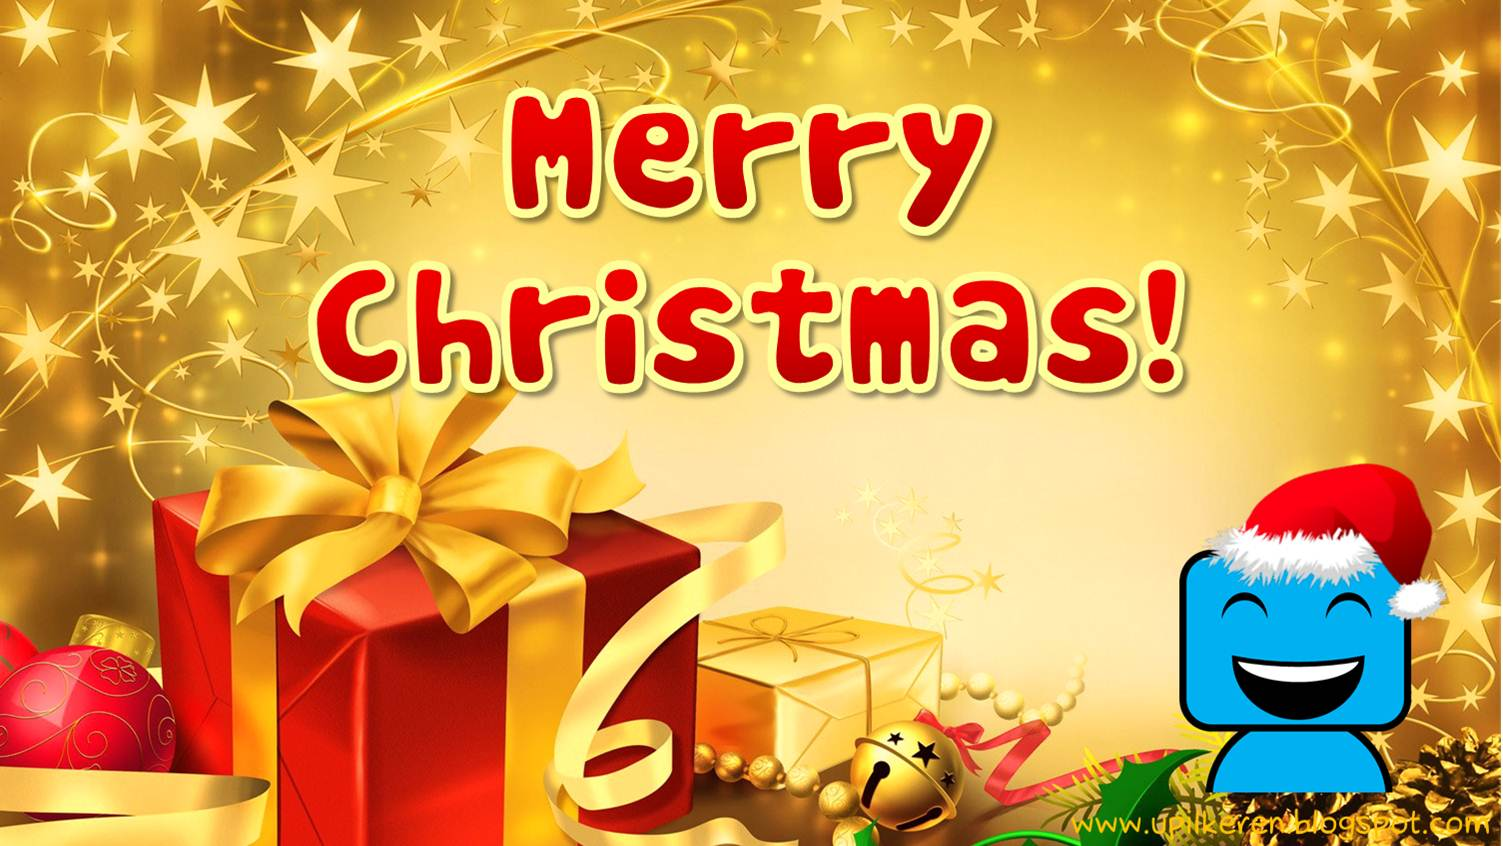 Merry christmas display pictures for bbm